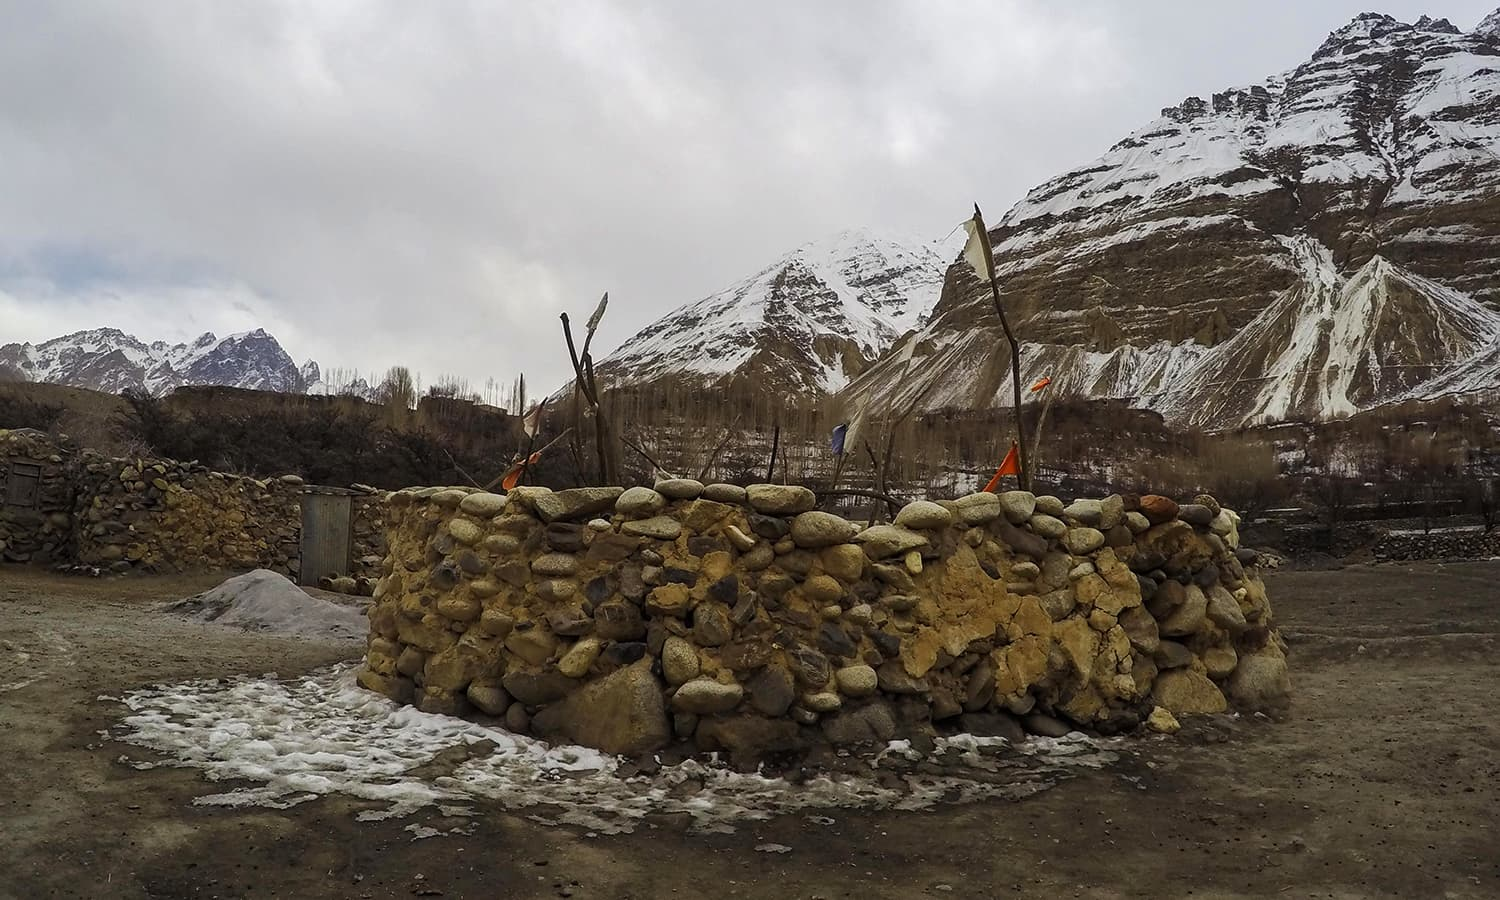 A spiritual well in Shimshal. — Photo by author